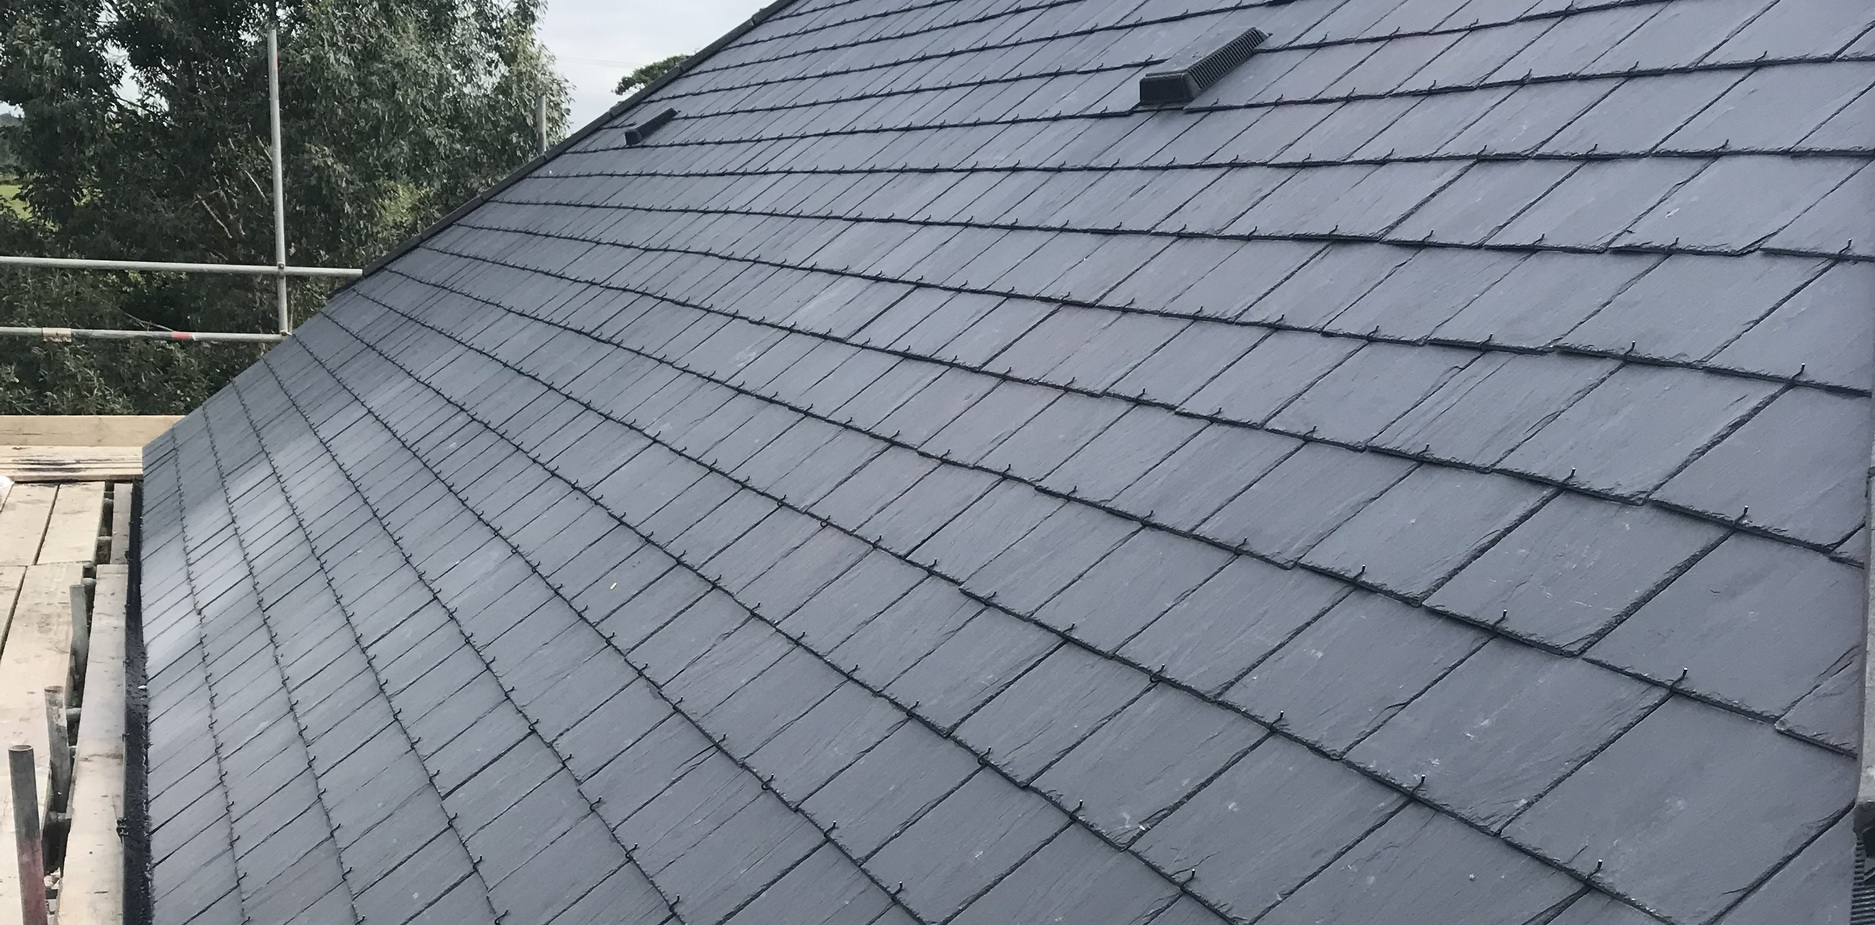 images/slideshow/griffin-roofing-north-devon.jpg